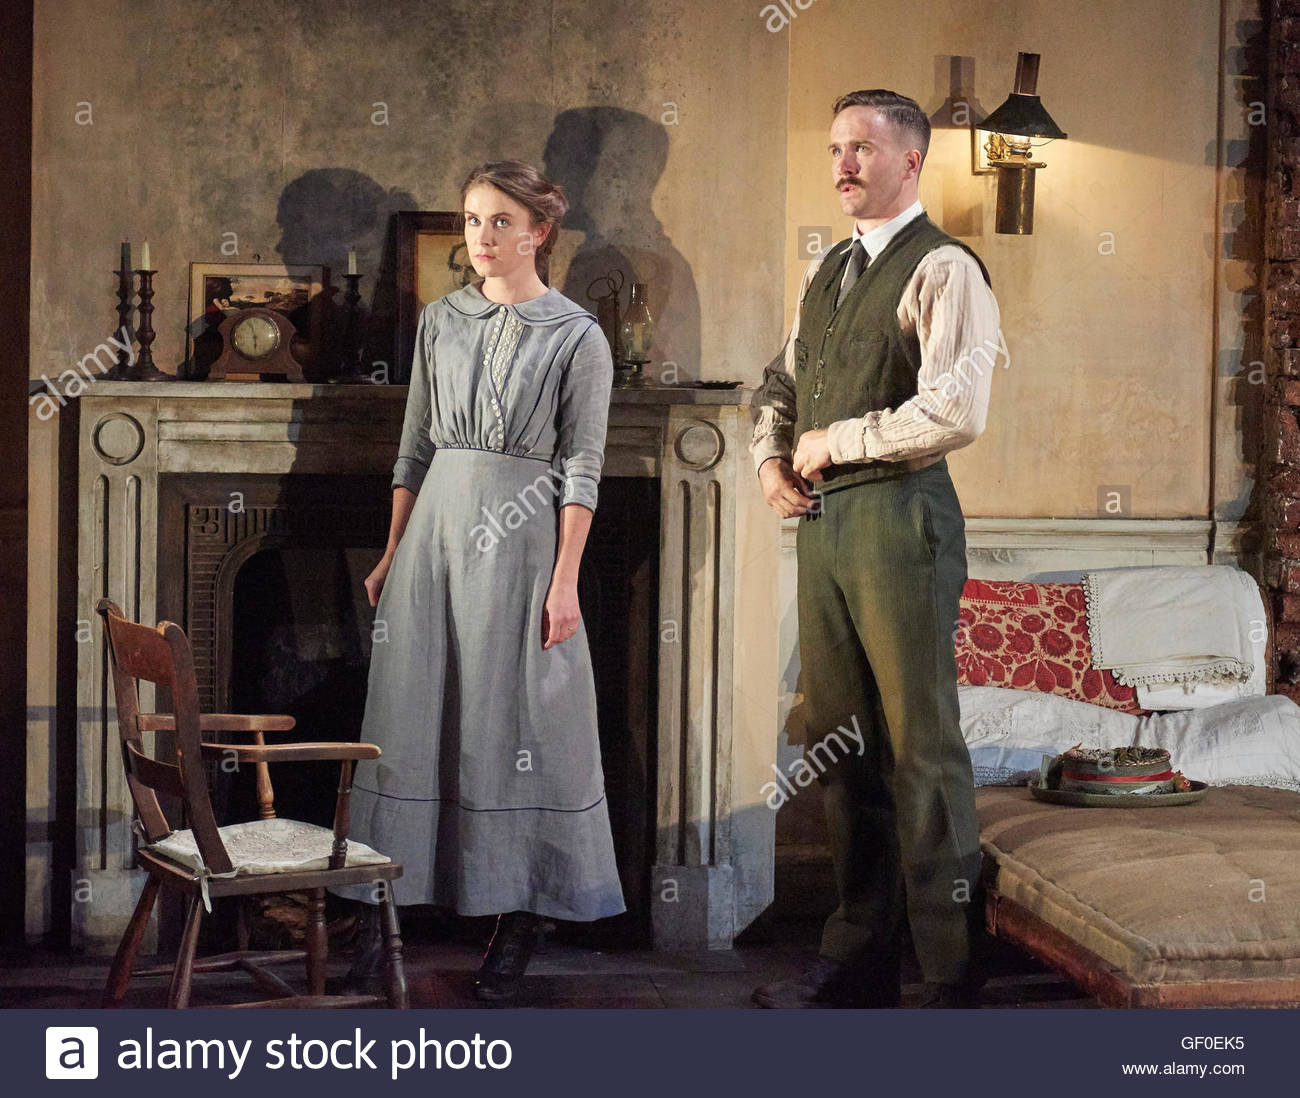 The Plough and The Stars by Sean O'Casey, directed by Howard Davies and Jeremy Herrin. With Judith Roddy as - Stock Image